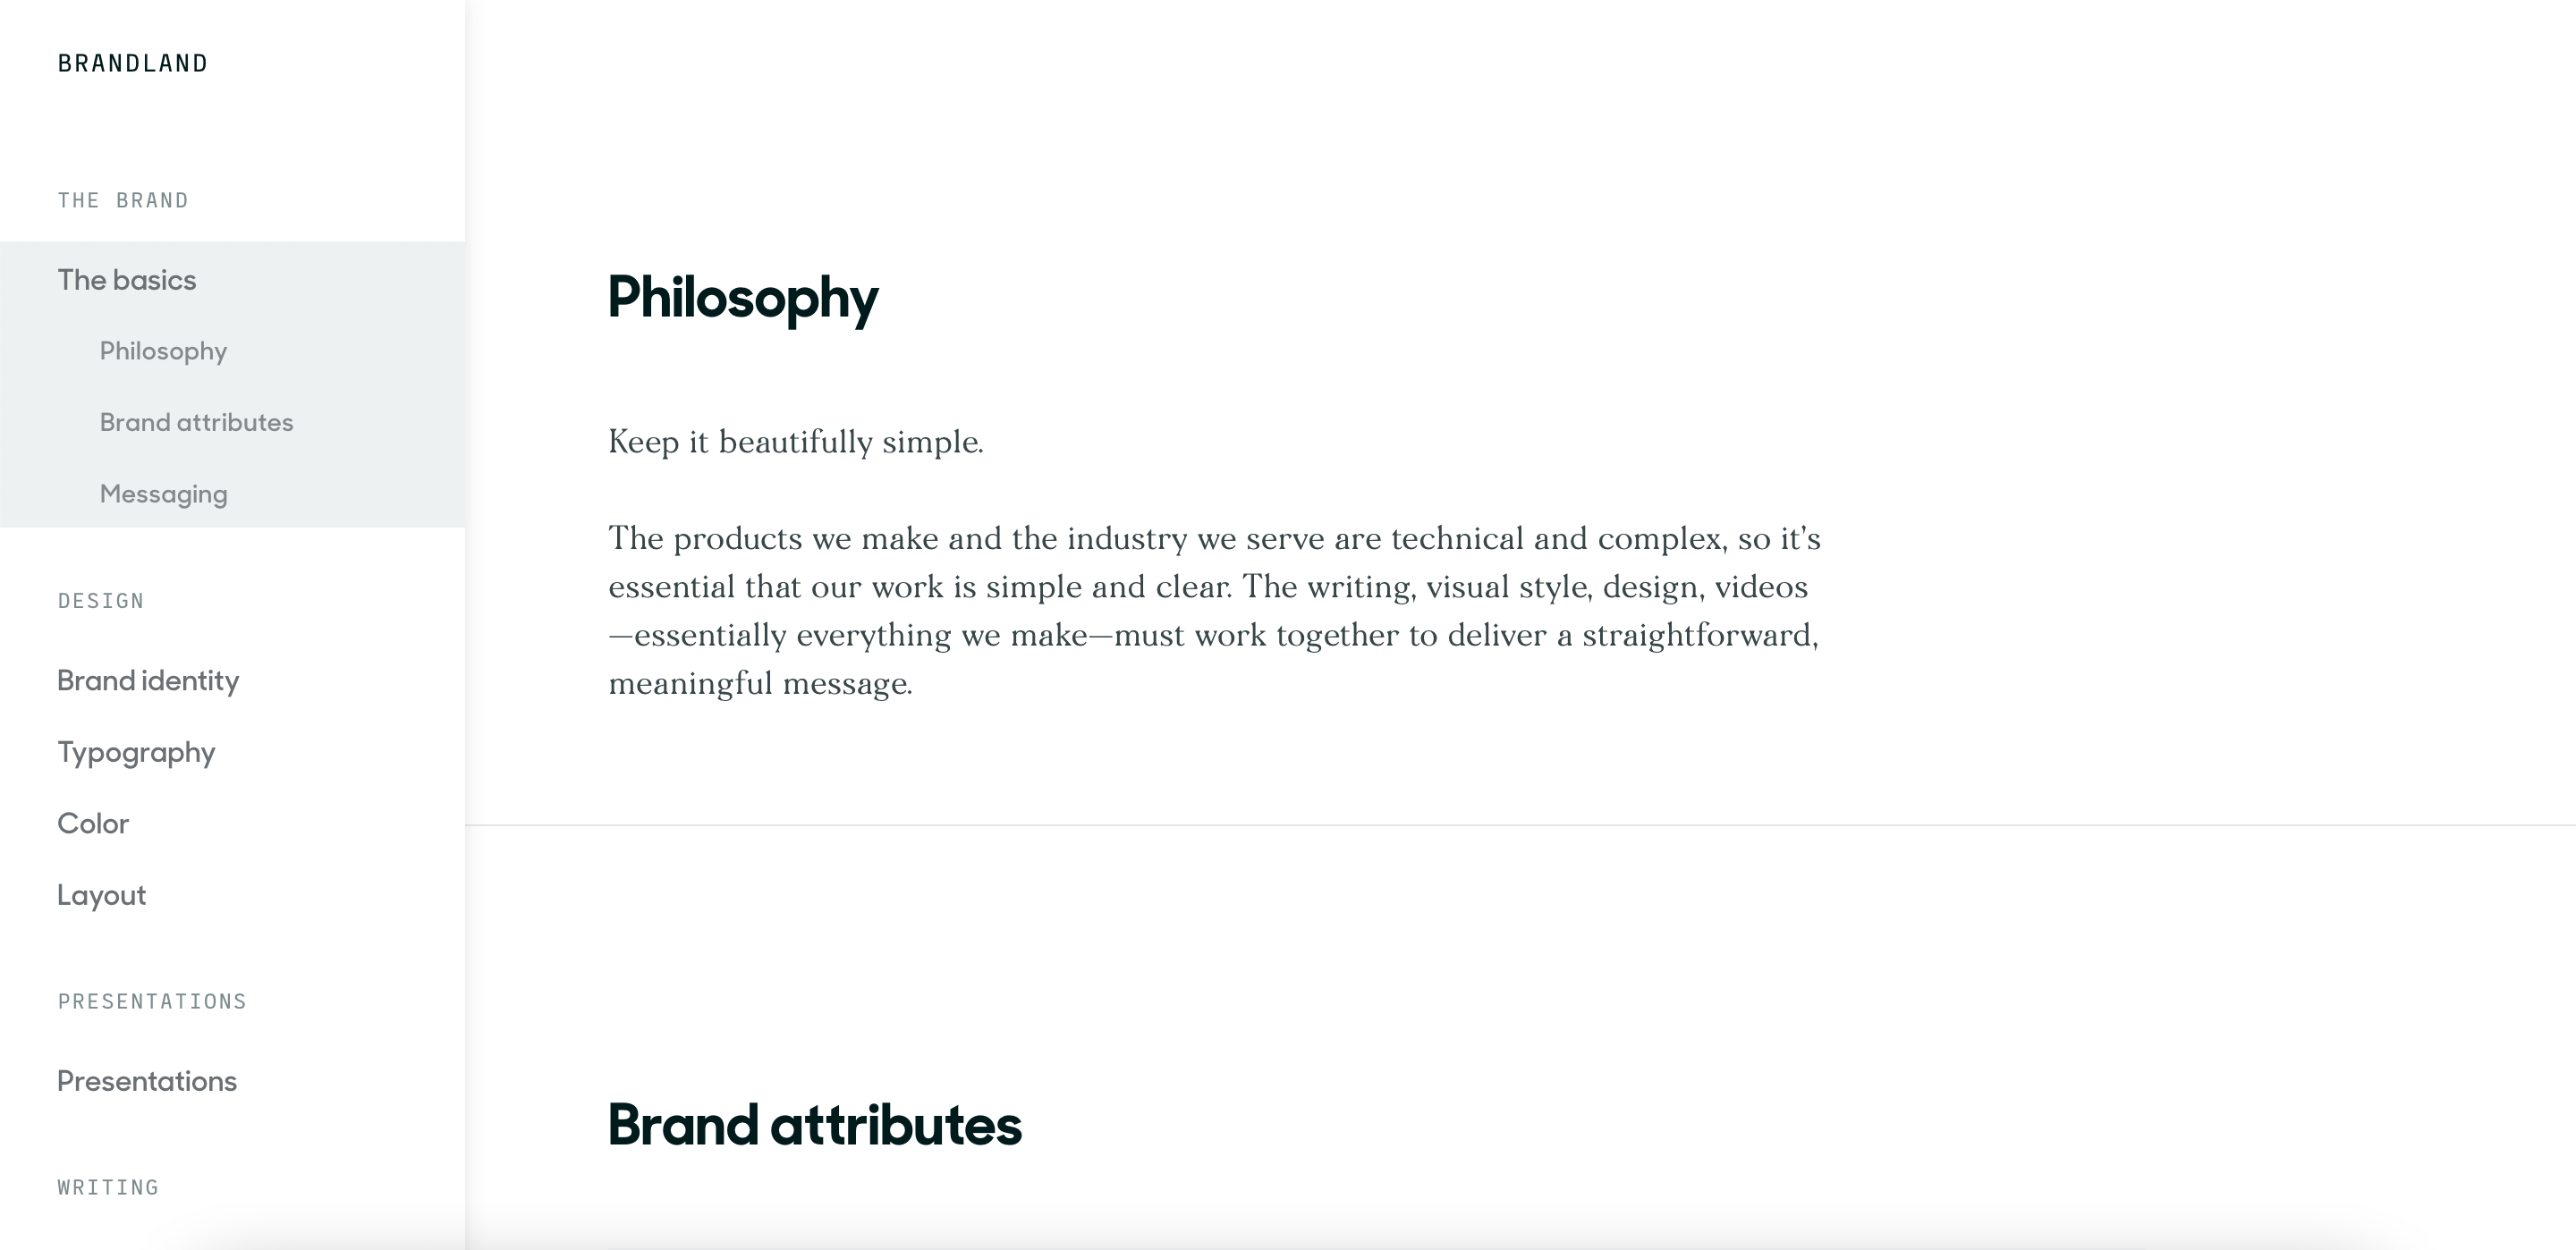 10 of the best content styleguides in tech - ZENDESK